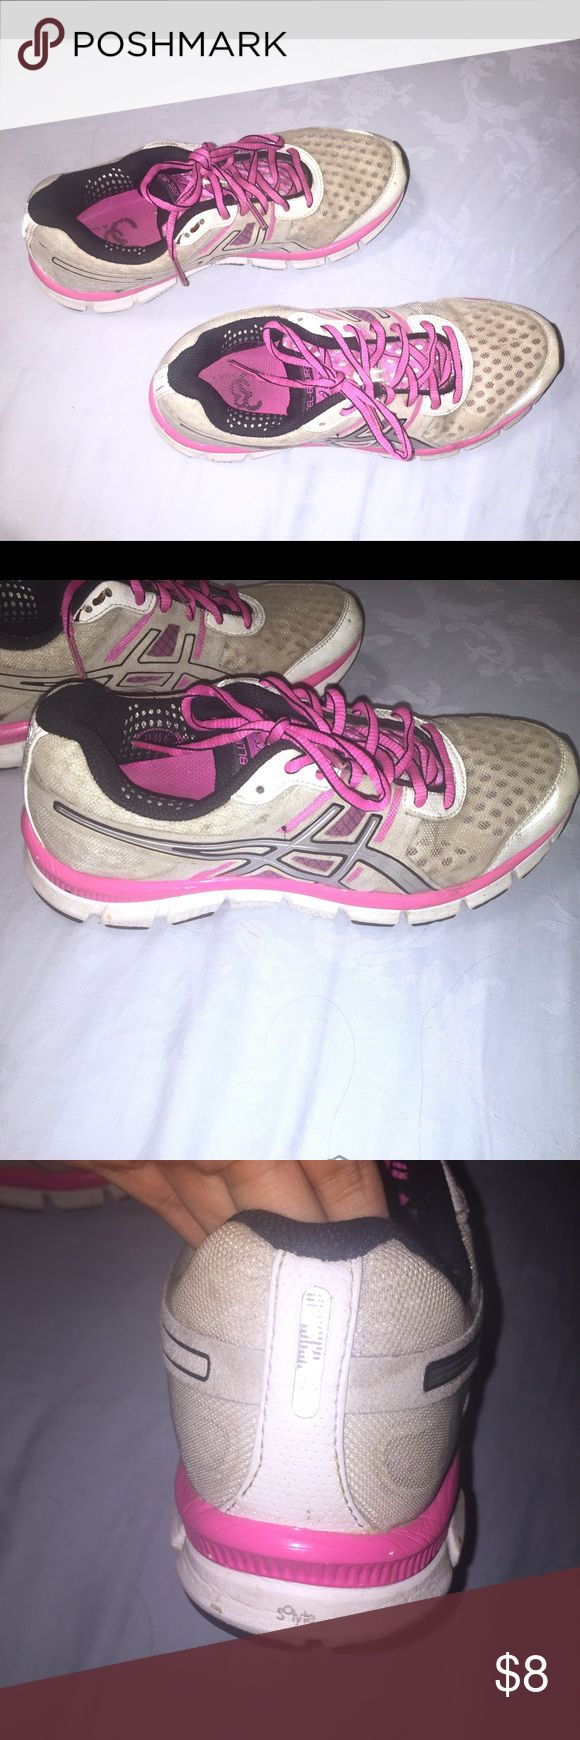 Asics Gel-Blur33 Shoes Very comfortable shoes. Size: 8. Discoloration where it's suppose to be white. Selling for cheap! Asics Shoes Athletic Shoes